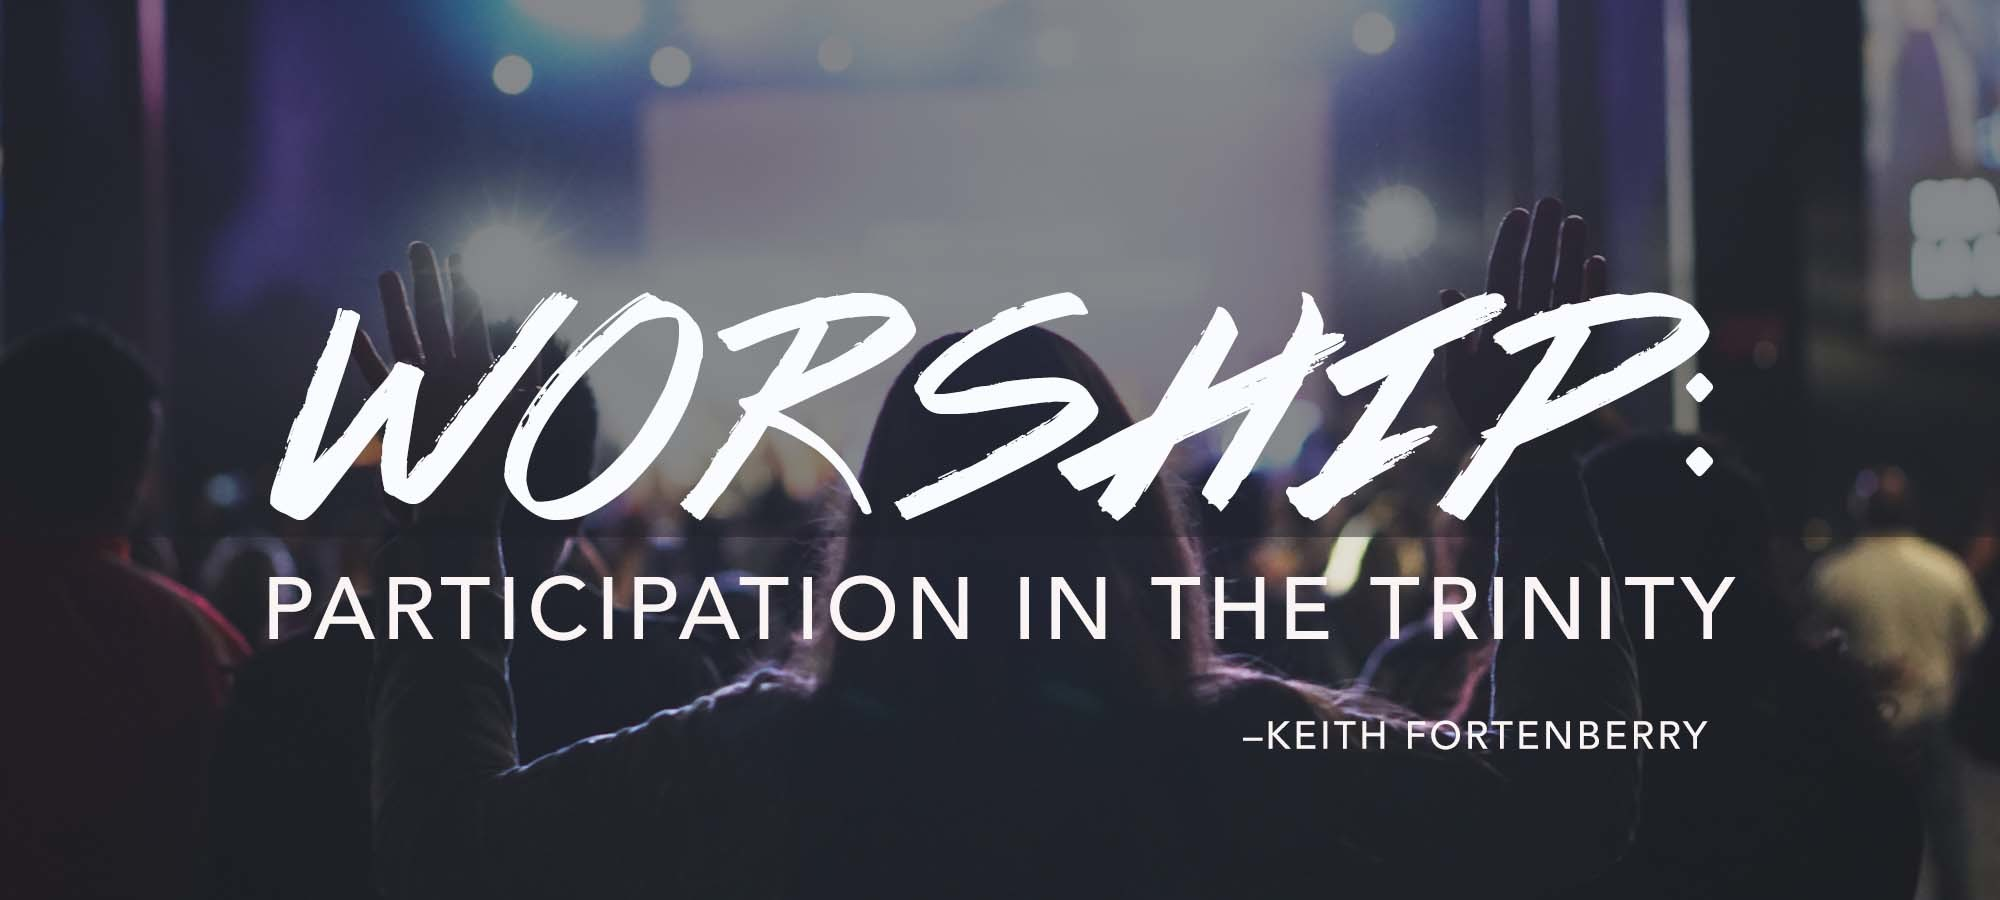 Worship: Participation in the Trinity